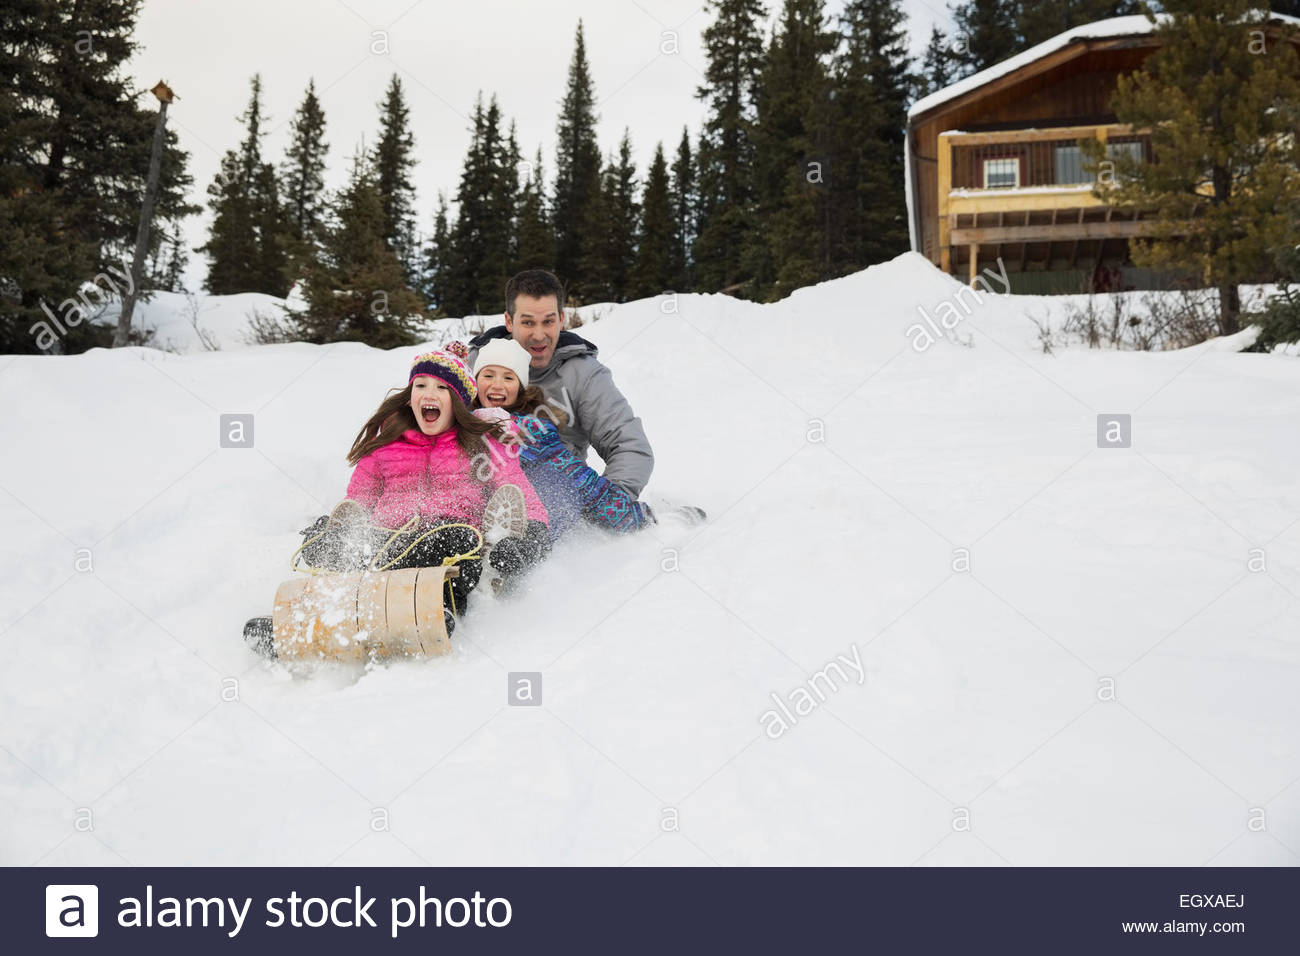 Father and daughters sledding on snowy hillside - Stock Image